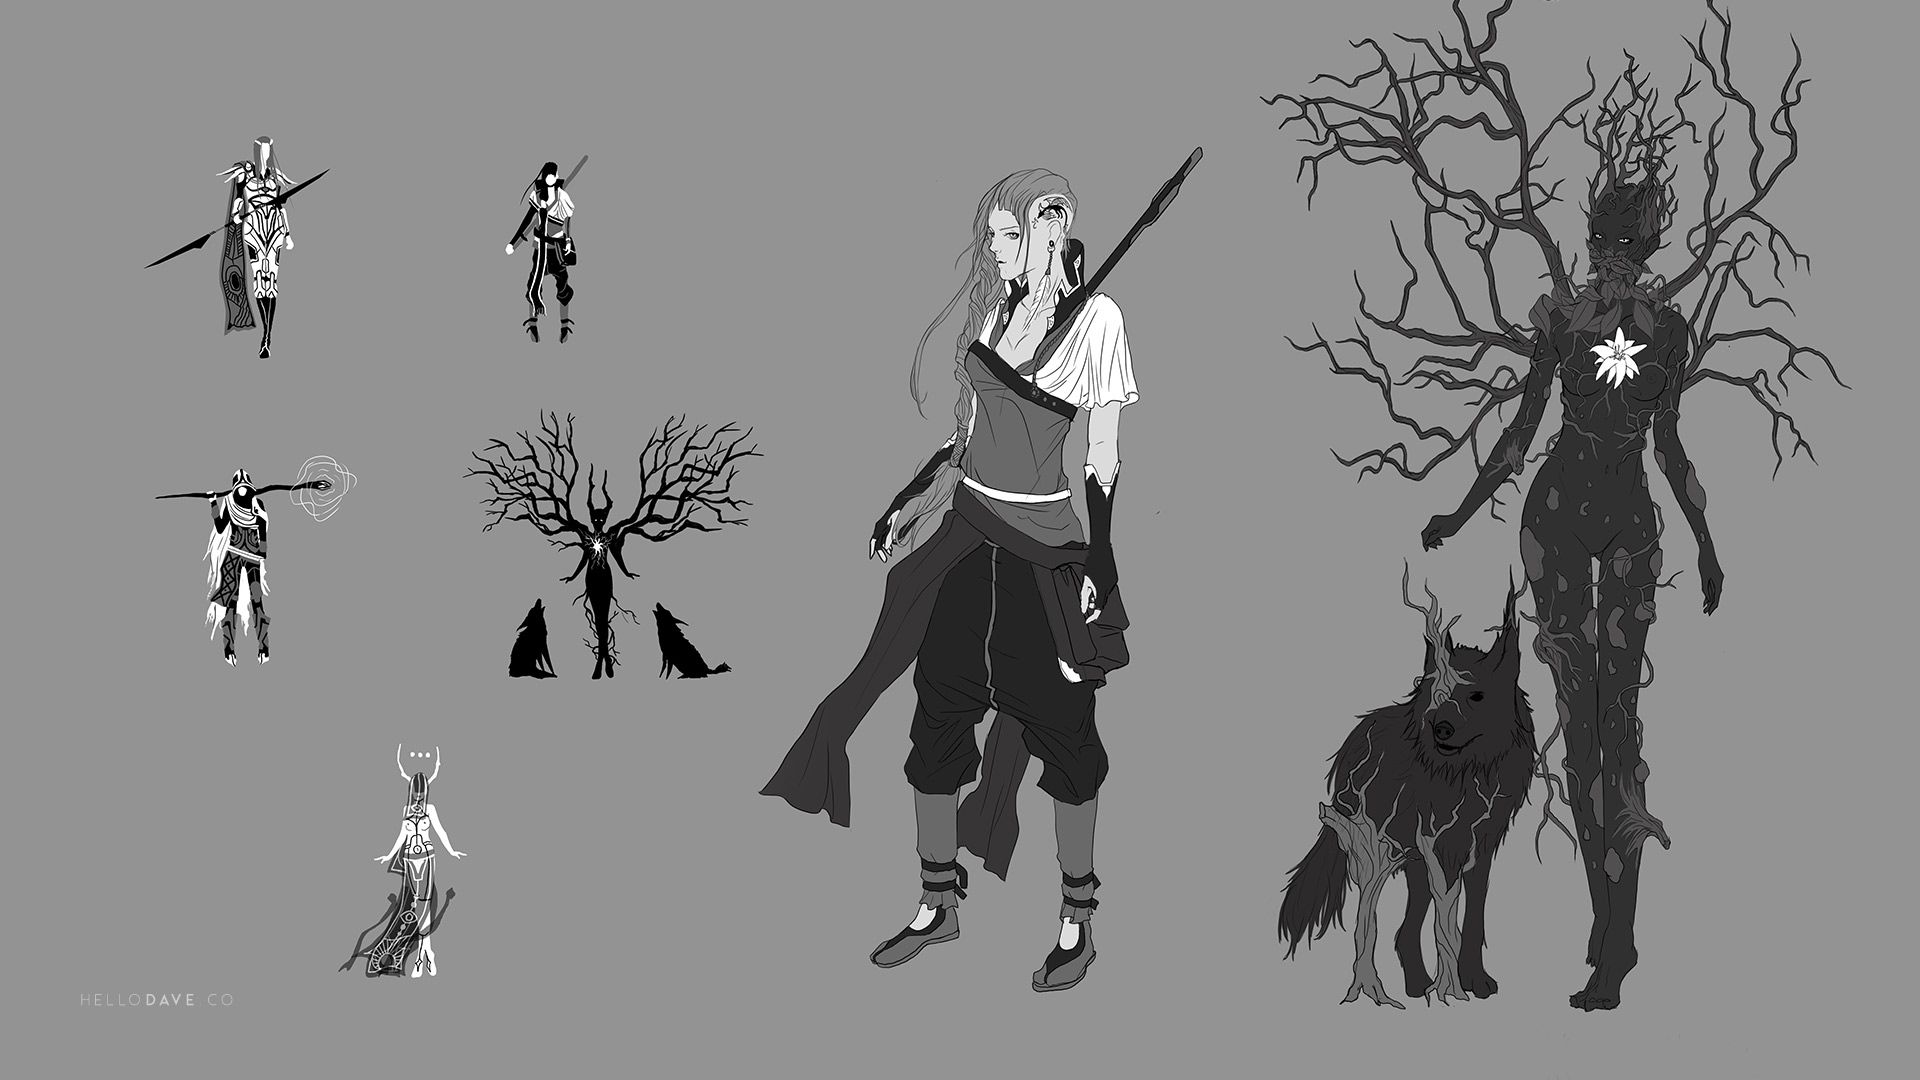 Character_BnW_Concepts_03_1920px